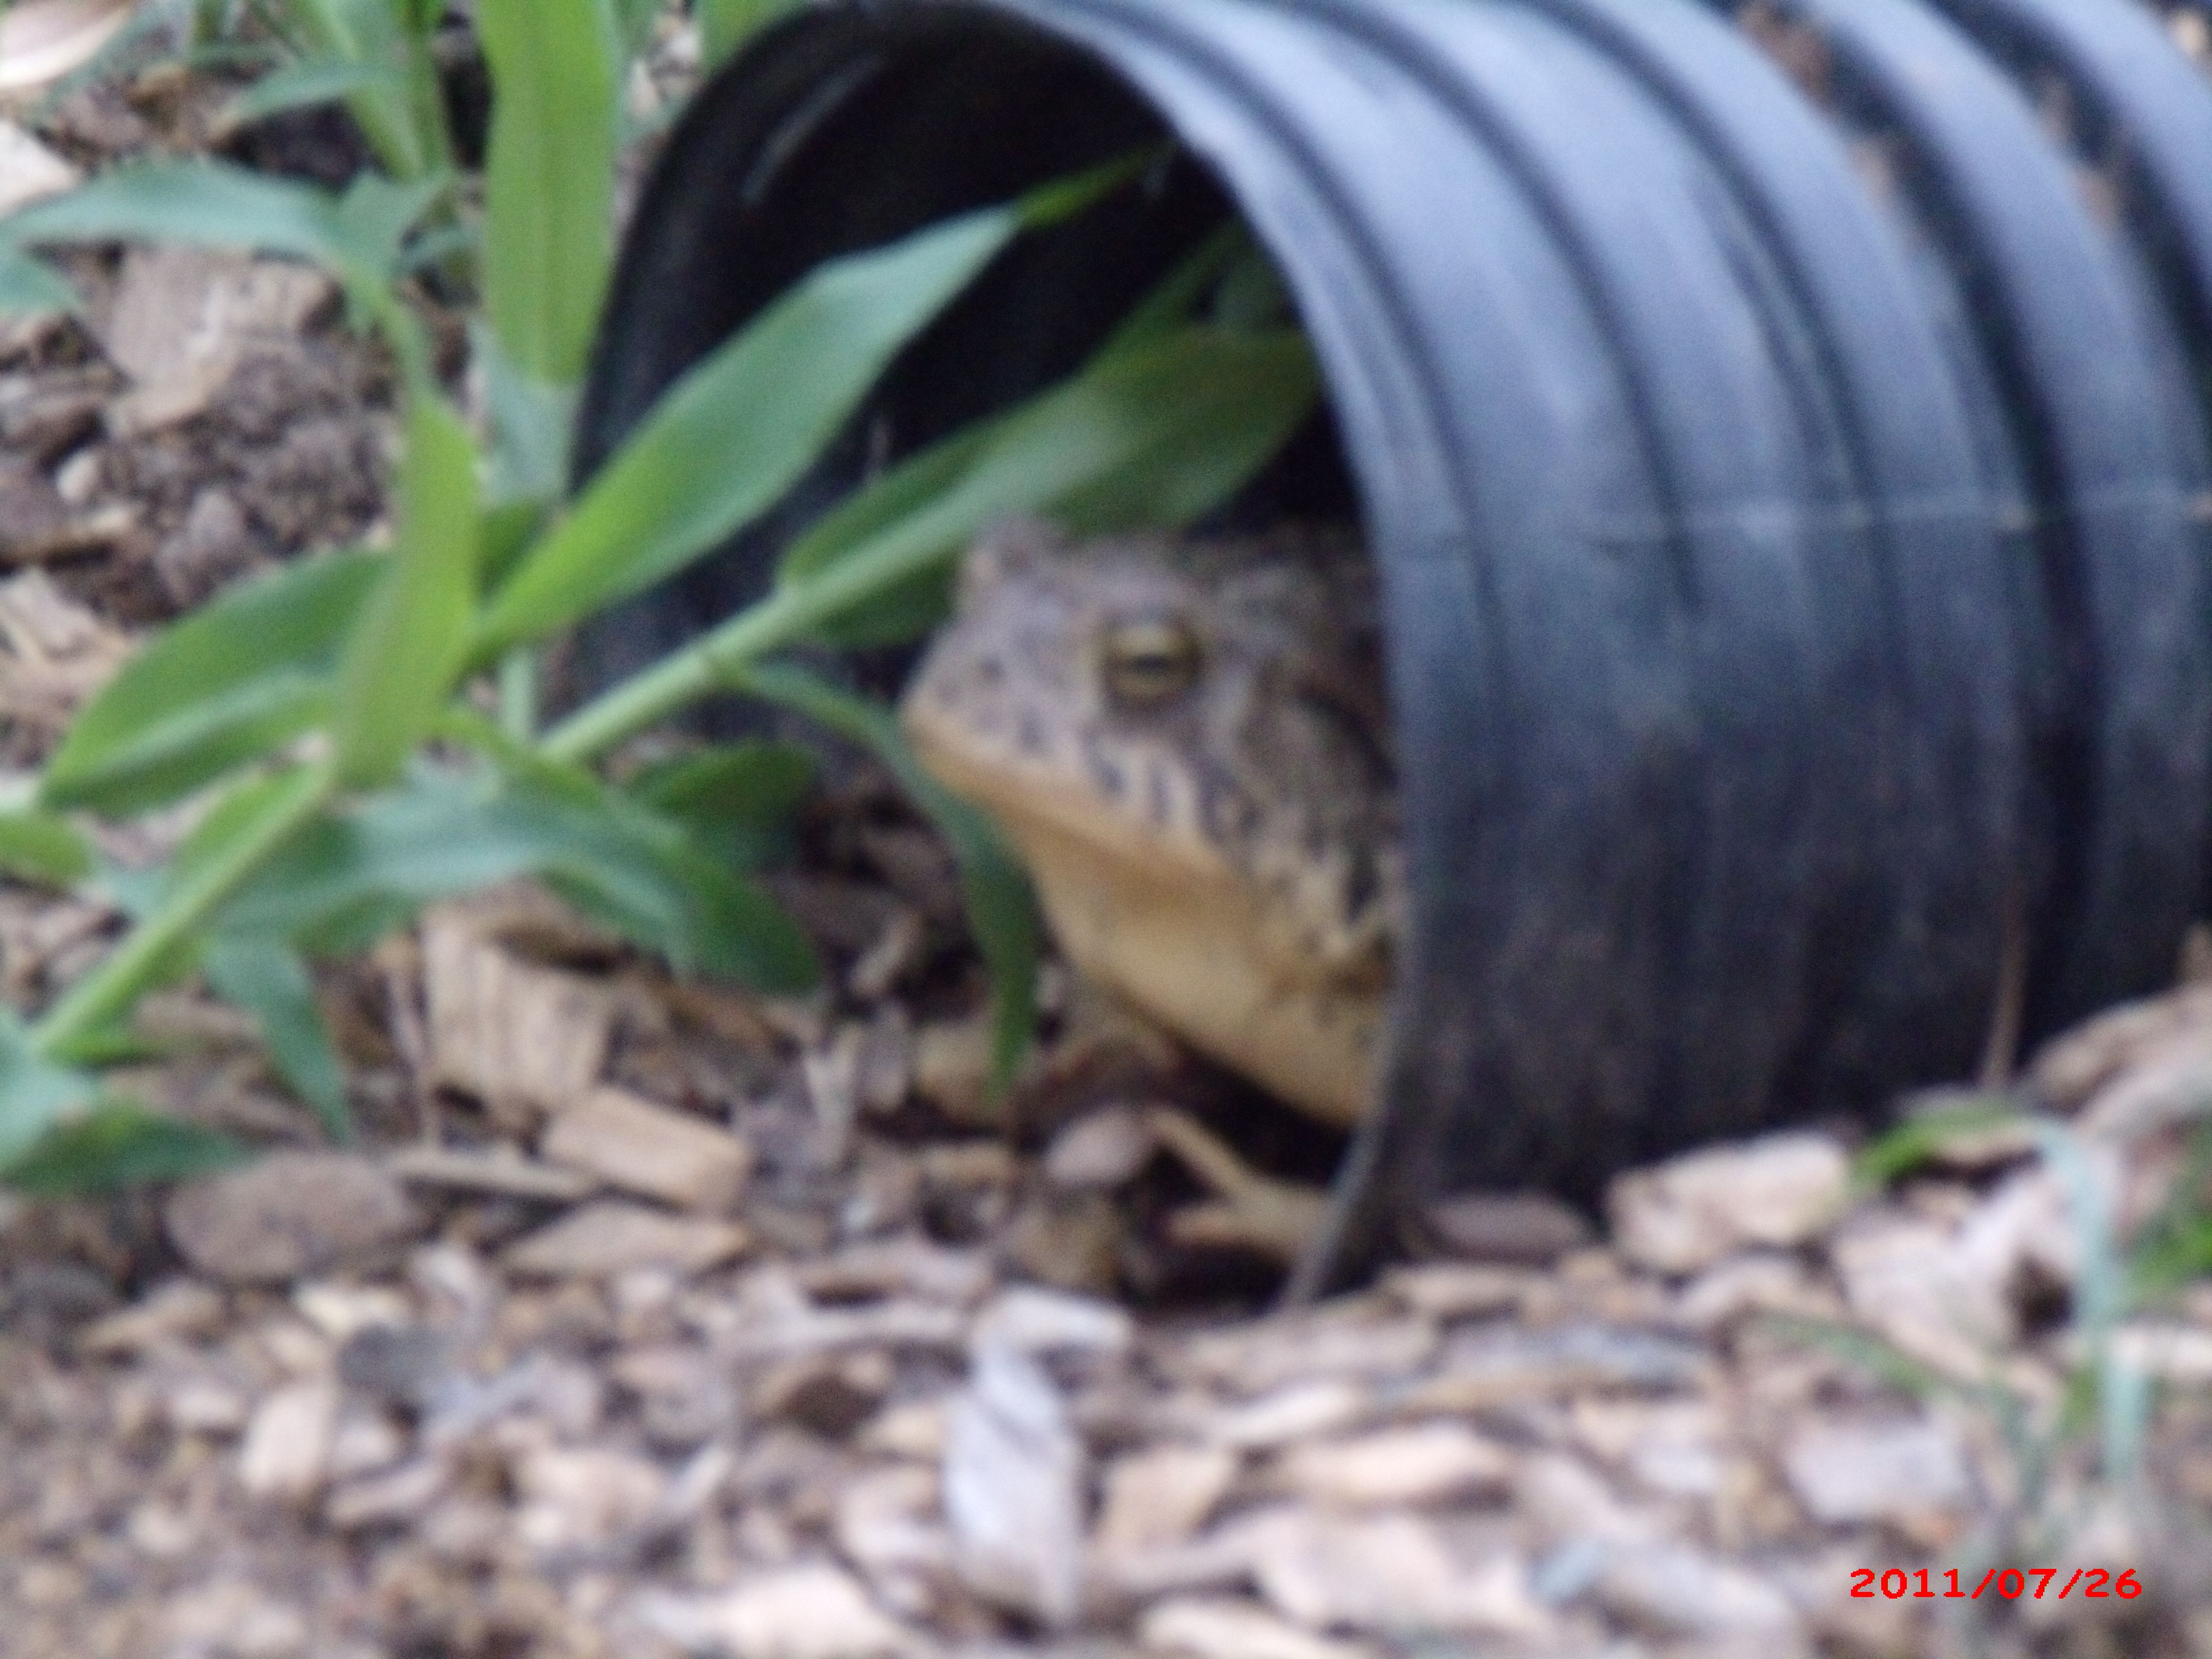 This is our desert toad. Comes out just when it rains and at night ...poor thing there is not much rain this year.